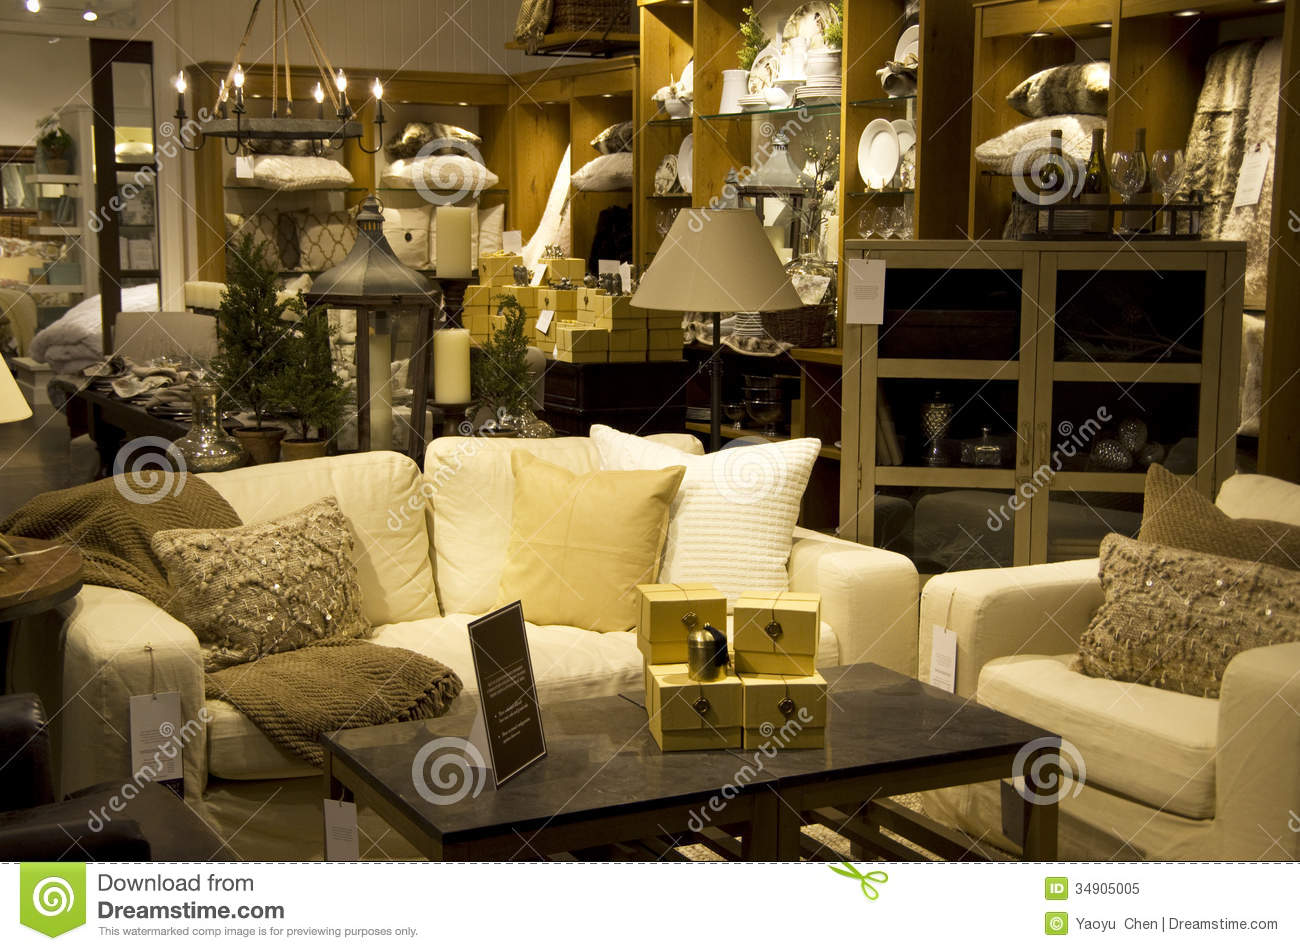 Luxury furniture home decor store stock image image for Home decor and furniture